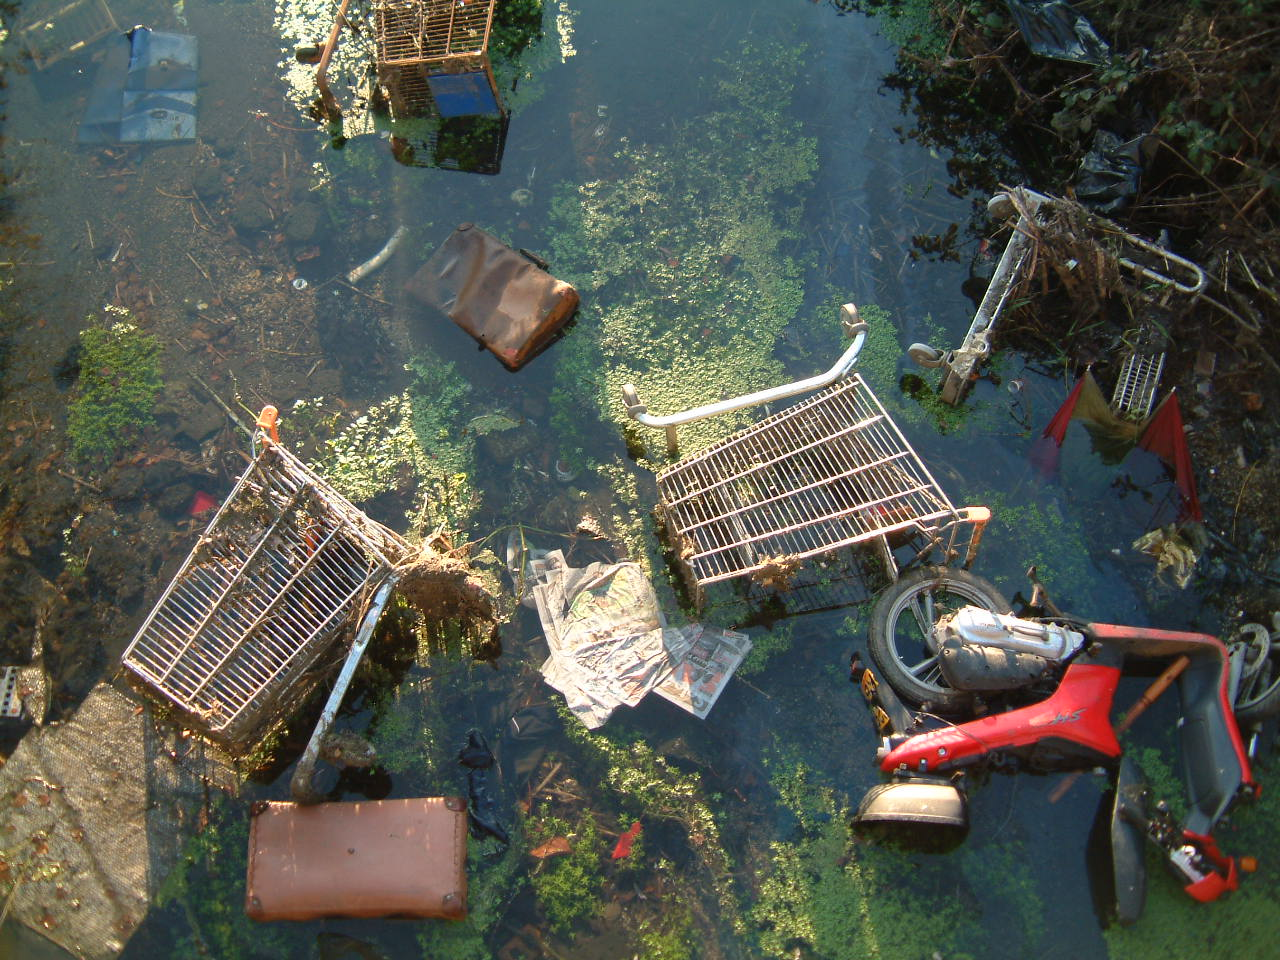 waterway cleaning